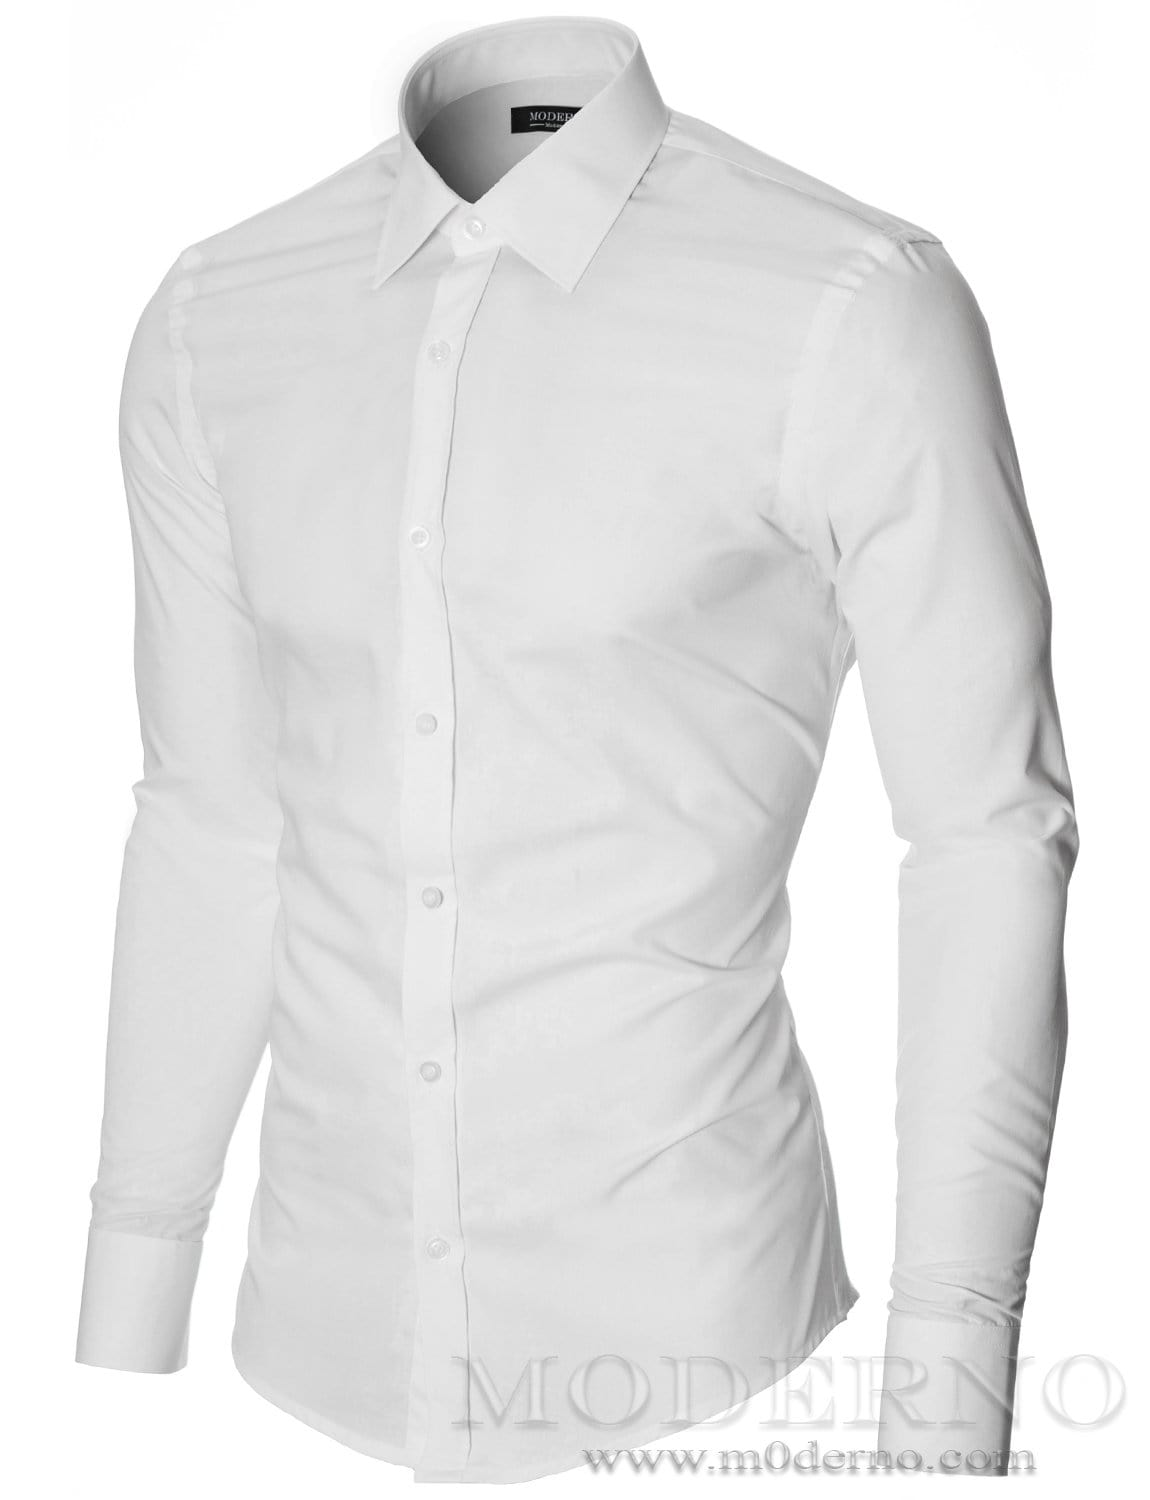 Mens dress shirt white (MOD1426LS) - MODERNO